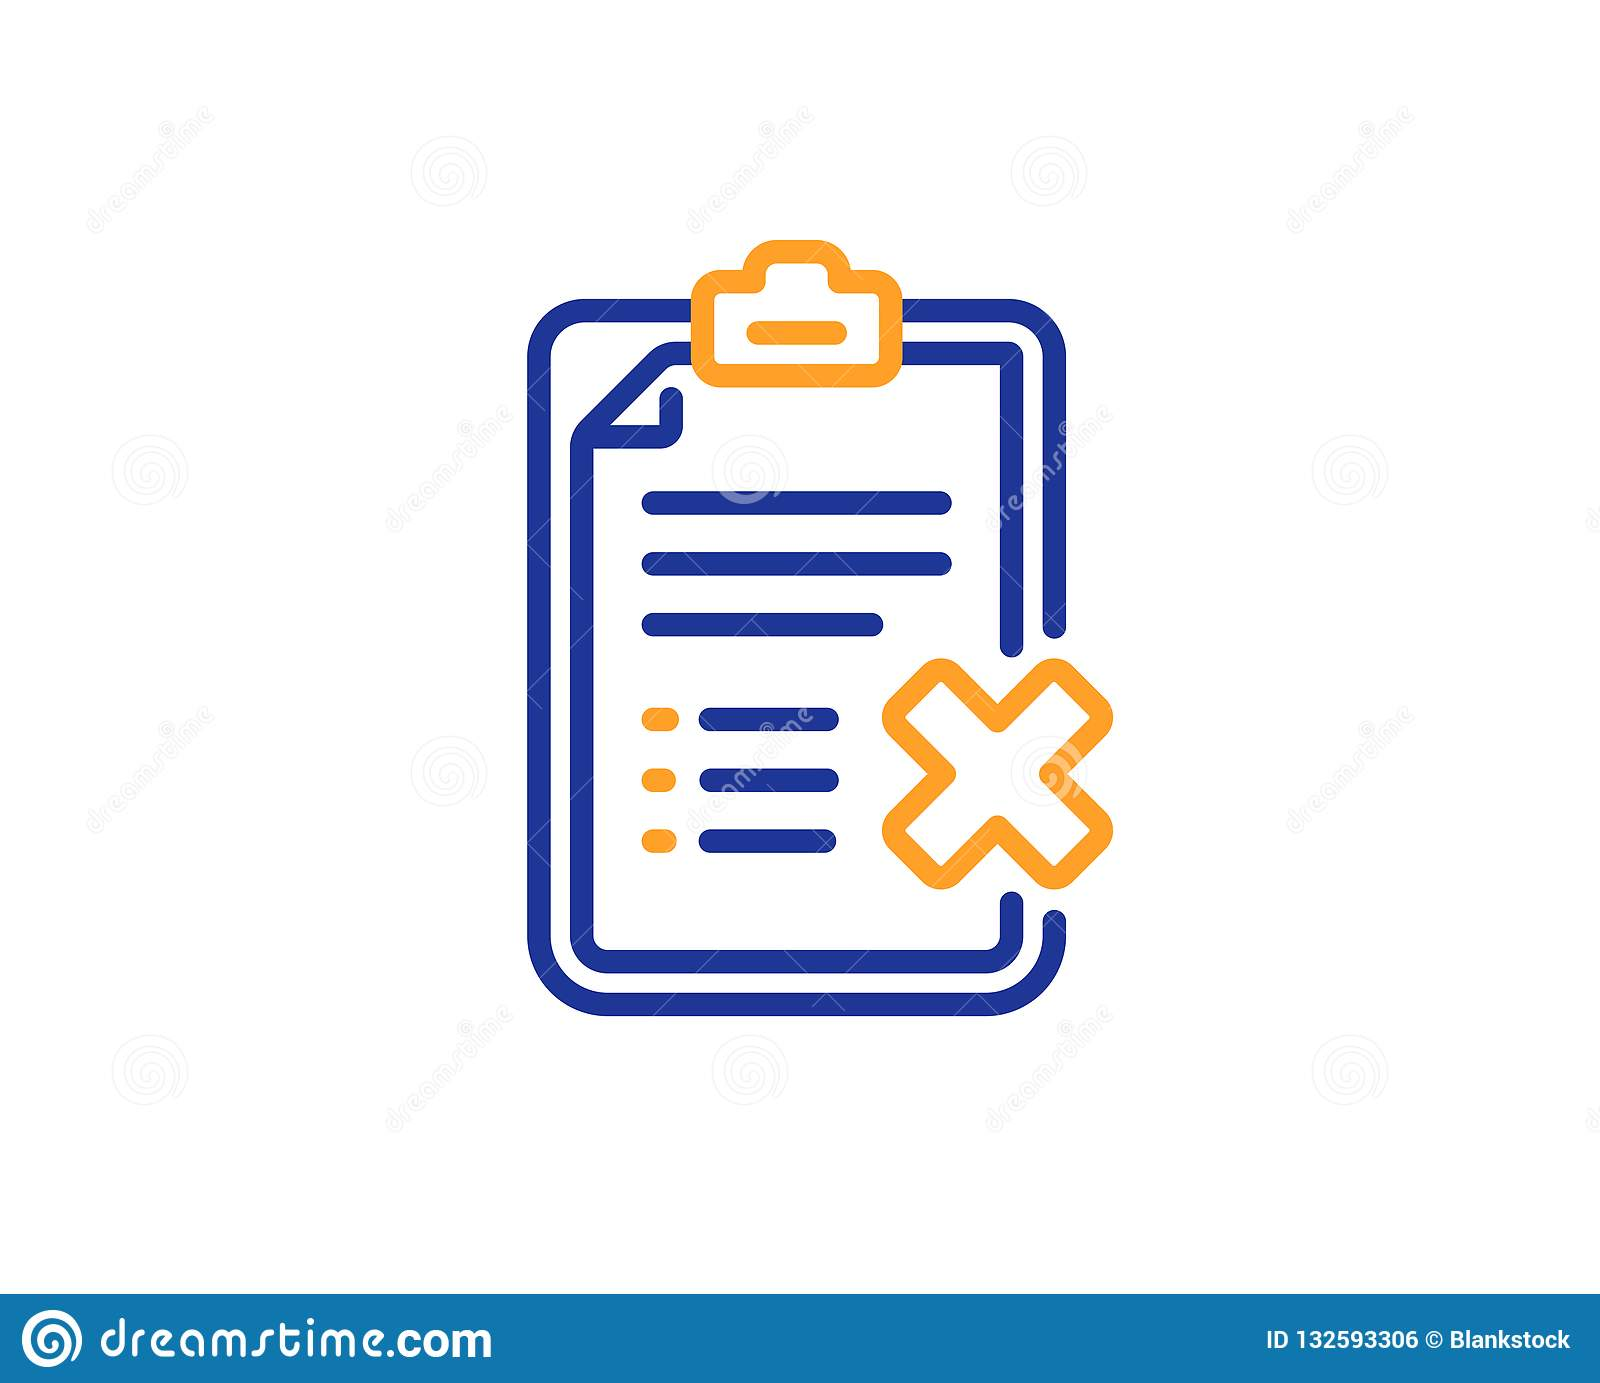 Reject checklist line icon. Decline document sign. Vector